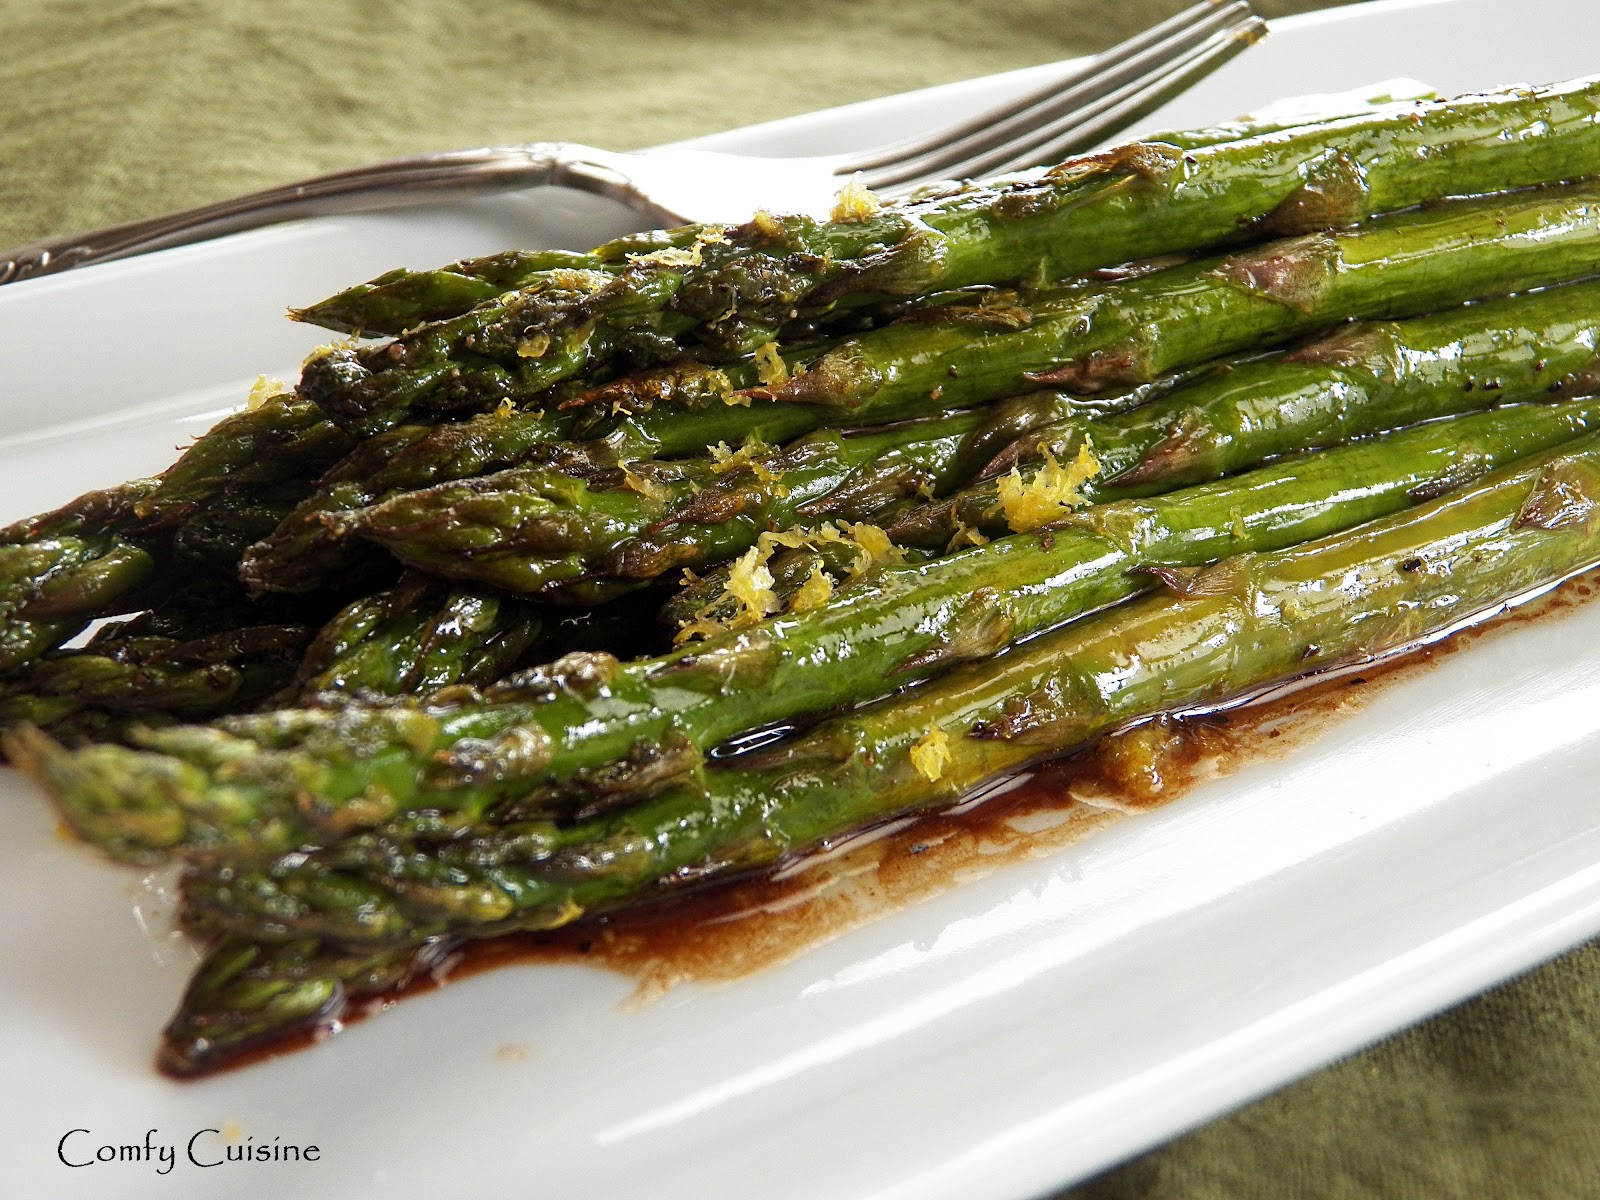 Comfy Cuisine: Roasted Asparagus with Balsamic Browned Butter